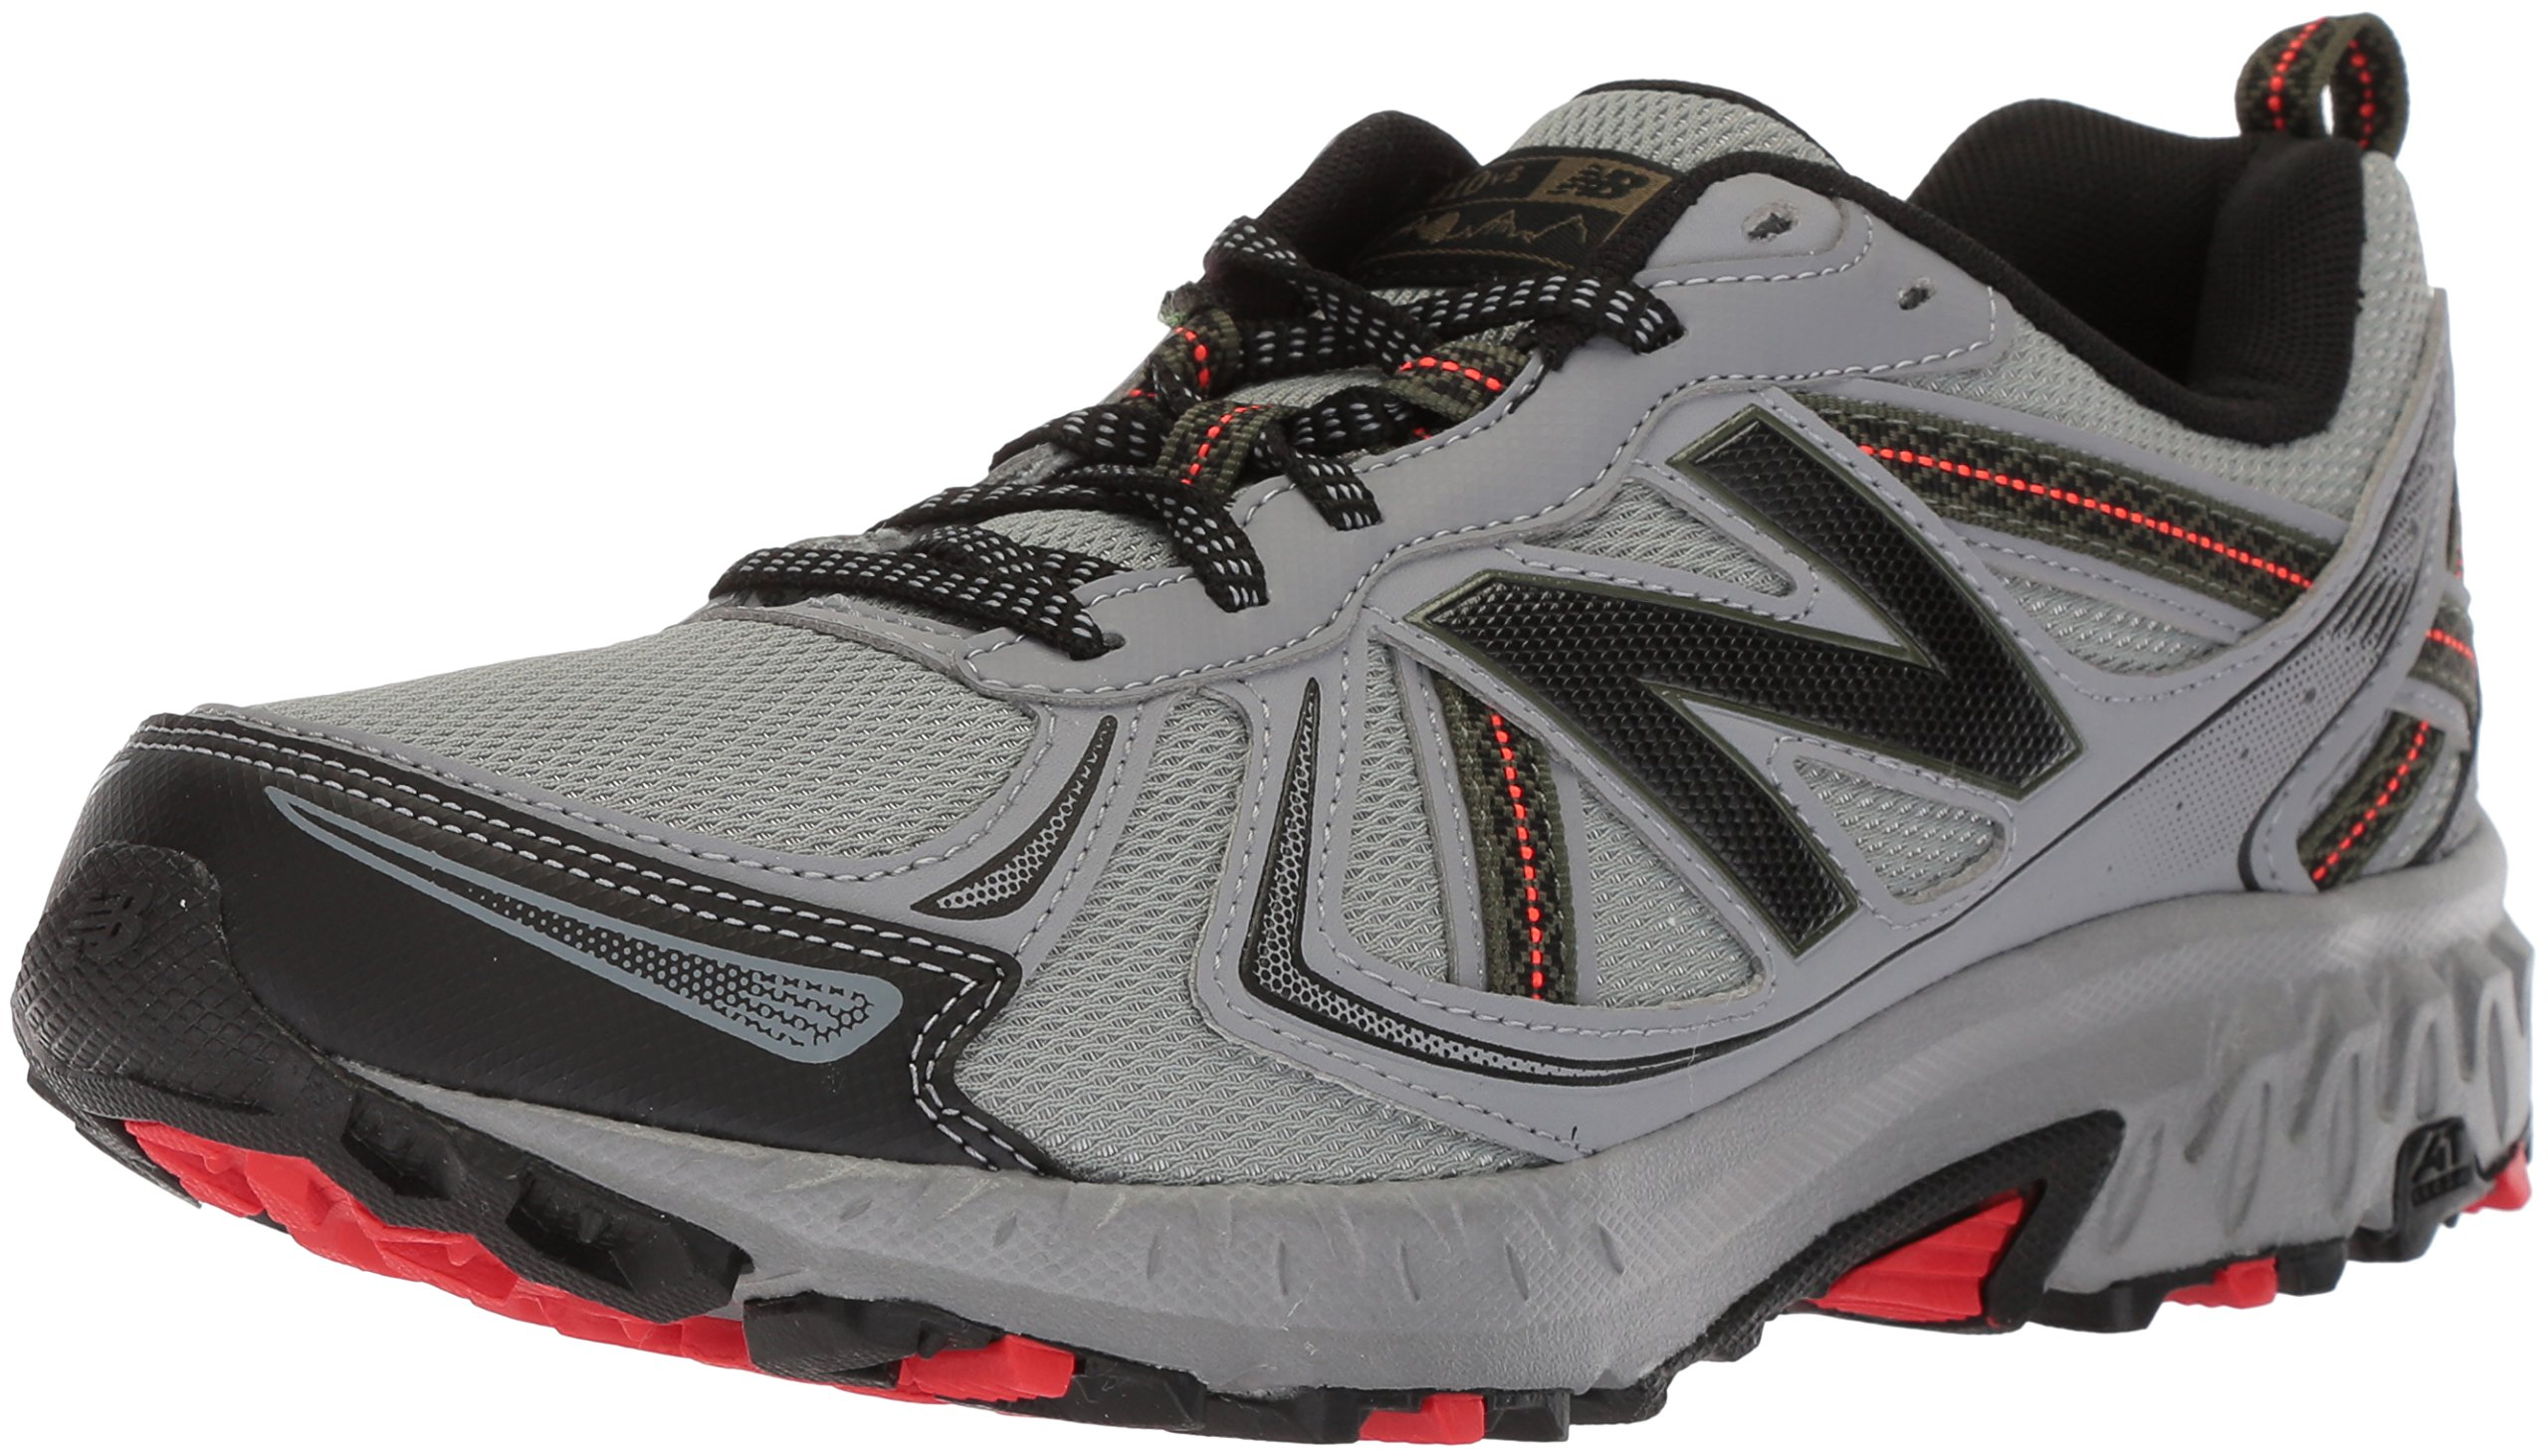 New Balance Men's MT410v5 Cushioning Trail Running Shoe, Steel, 8 D US by New Balance (Image #1)